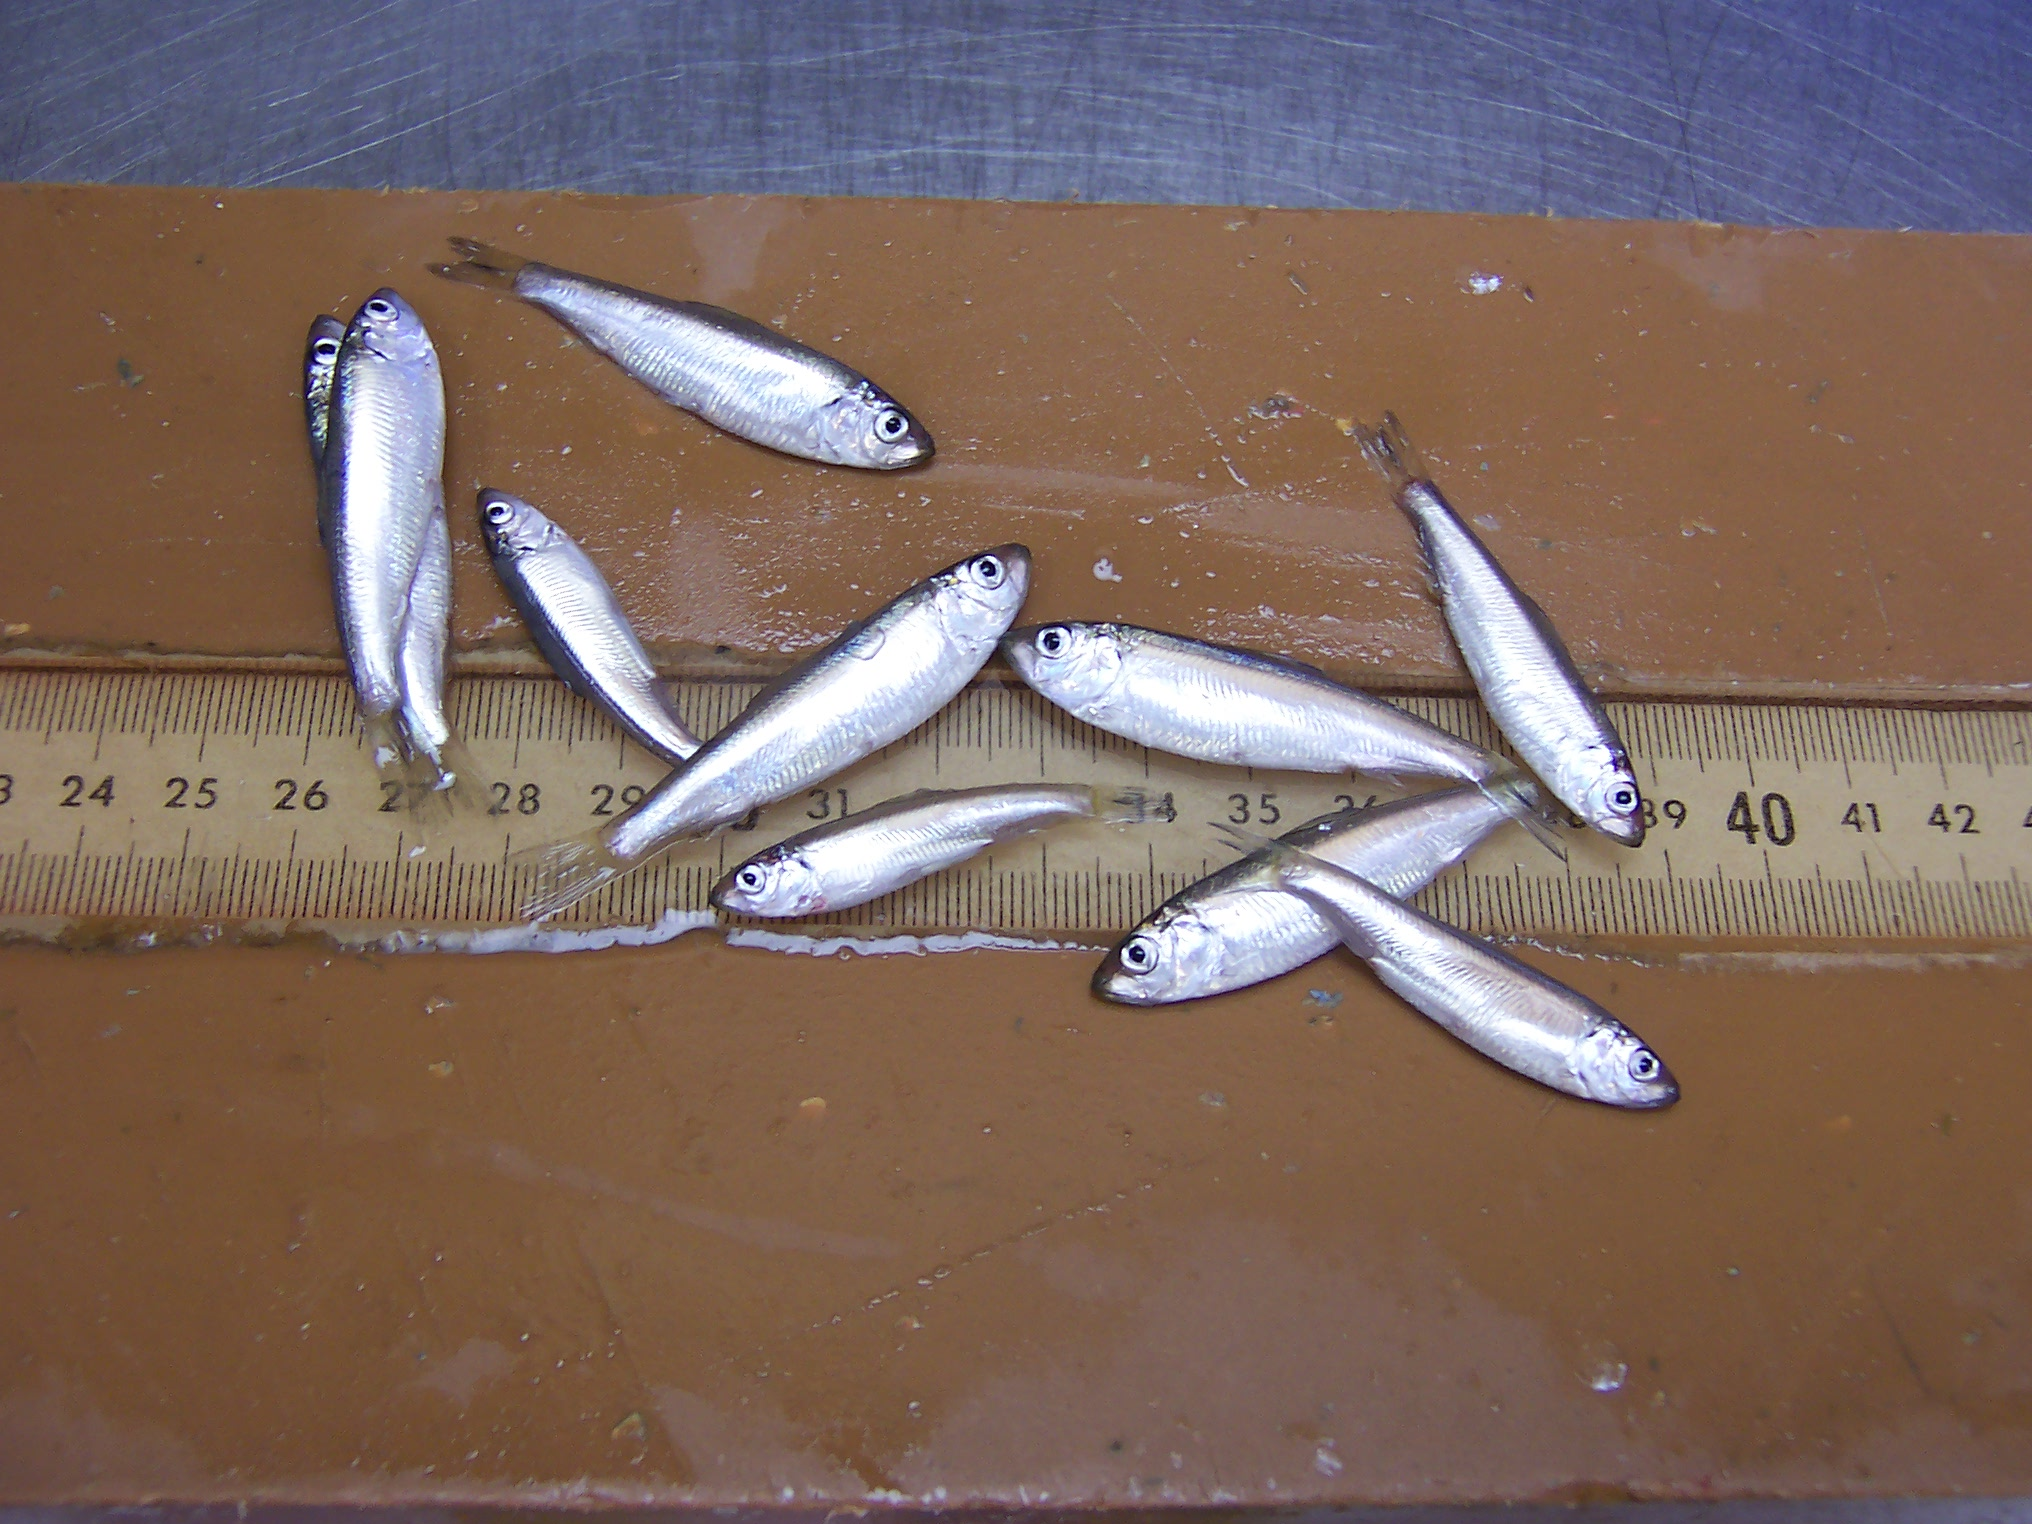 Alewives from Lake Huron. Image credit: Tim O'Brien